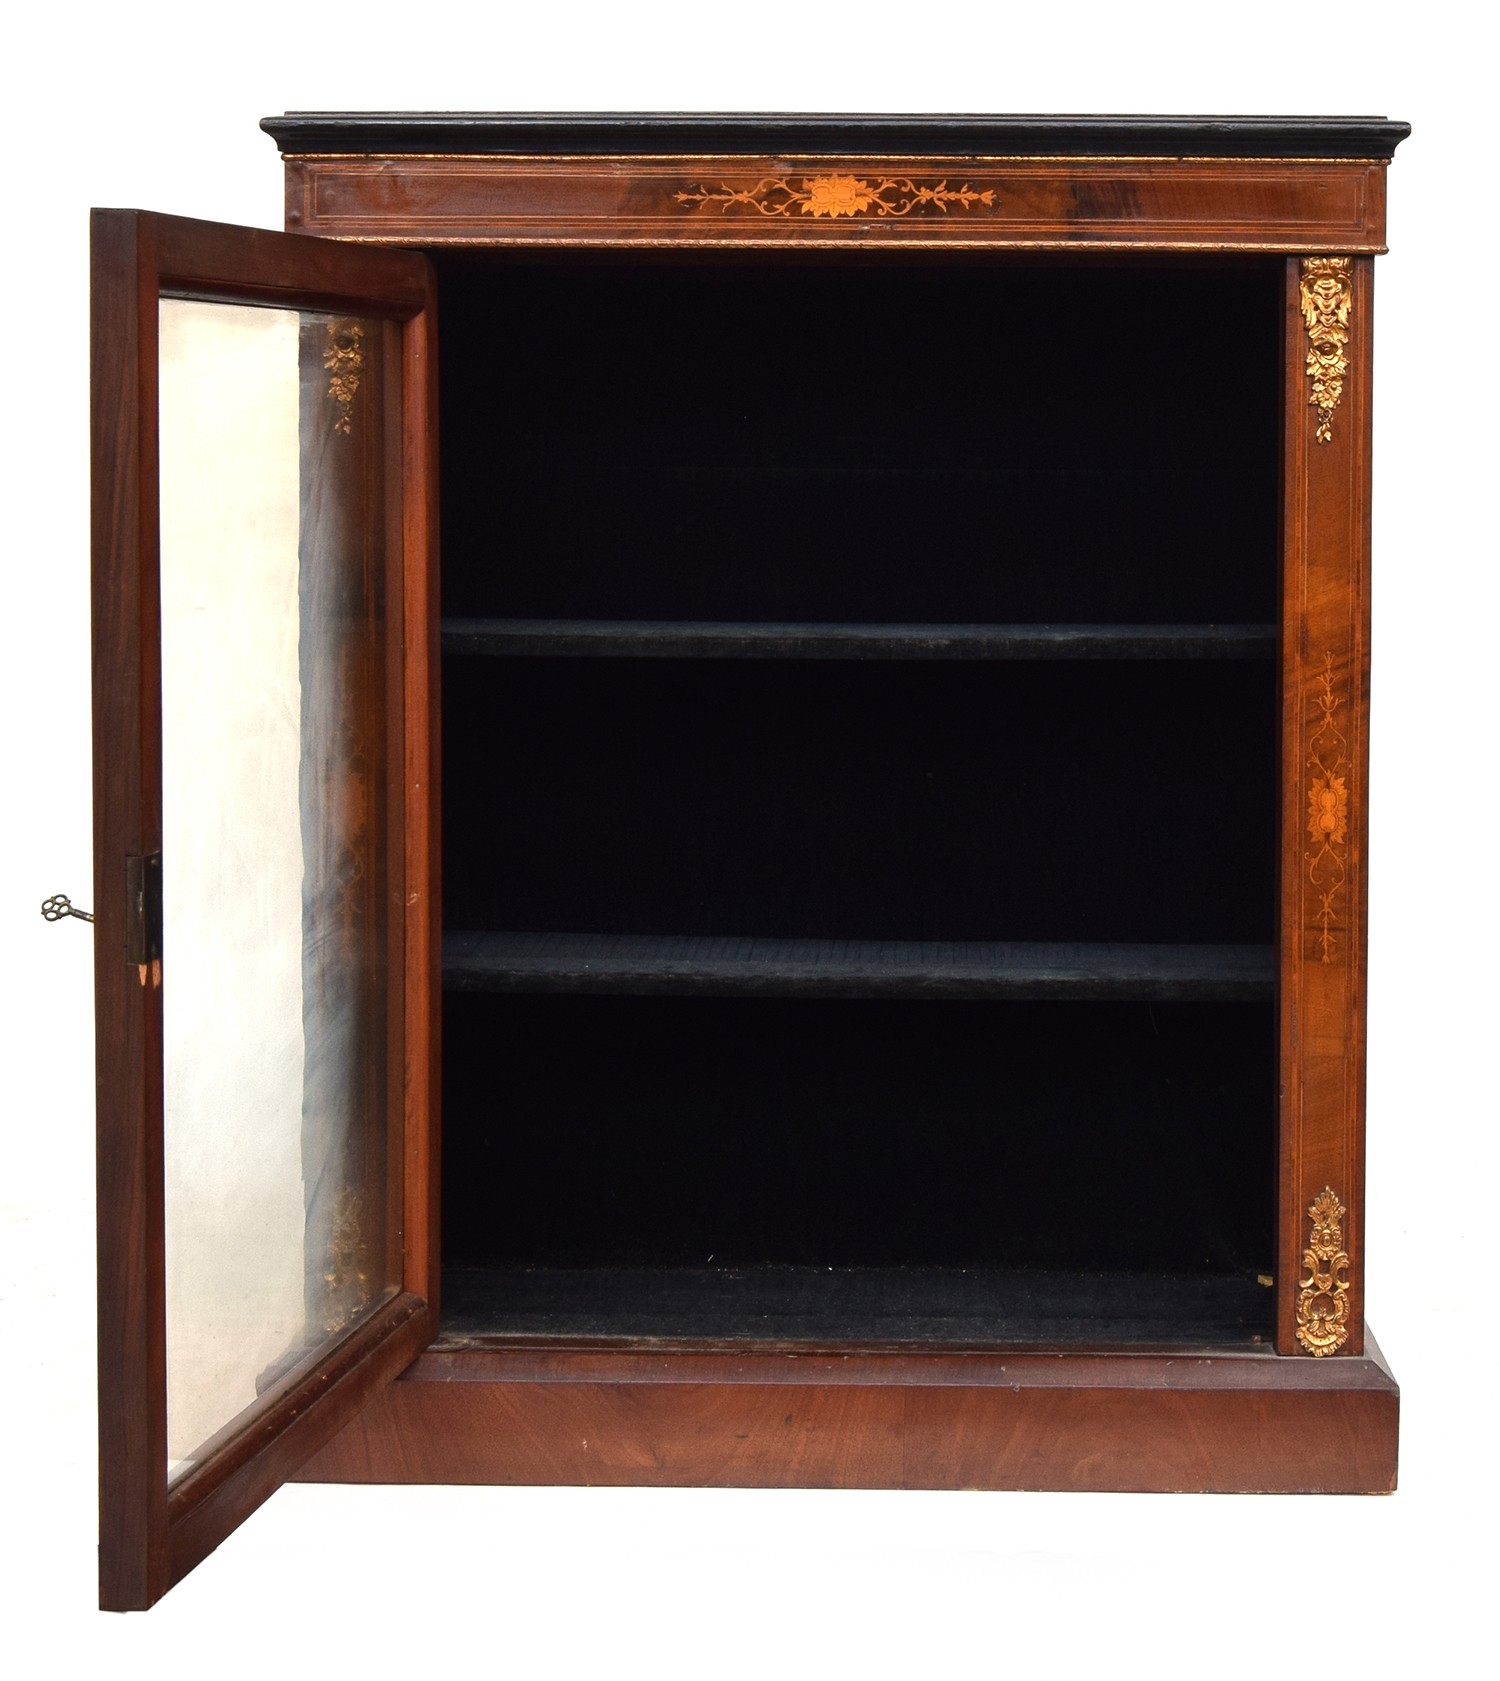 A small mahogany, marquetry and ormolu mounted glazed bookcase, the door opening to a baize lined - Image 2 of 2